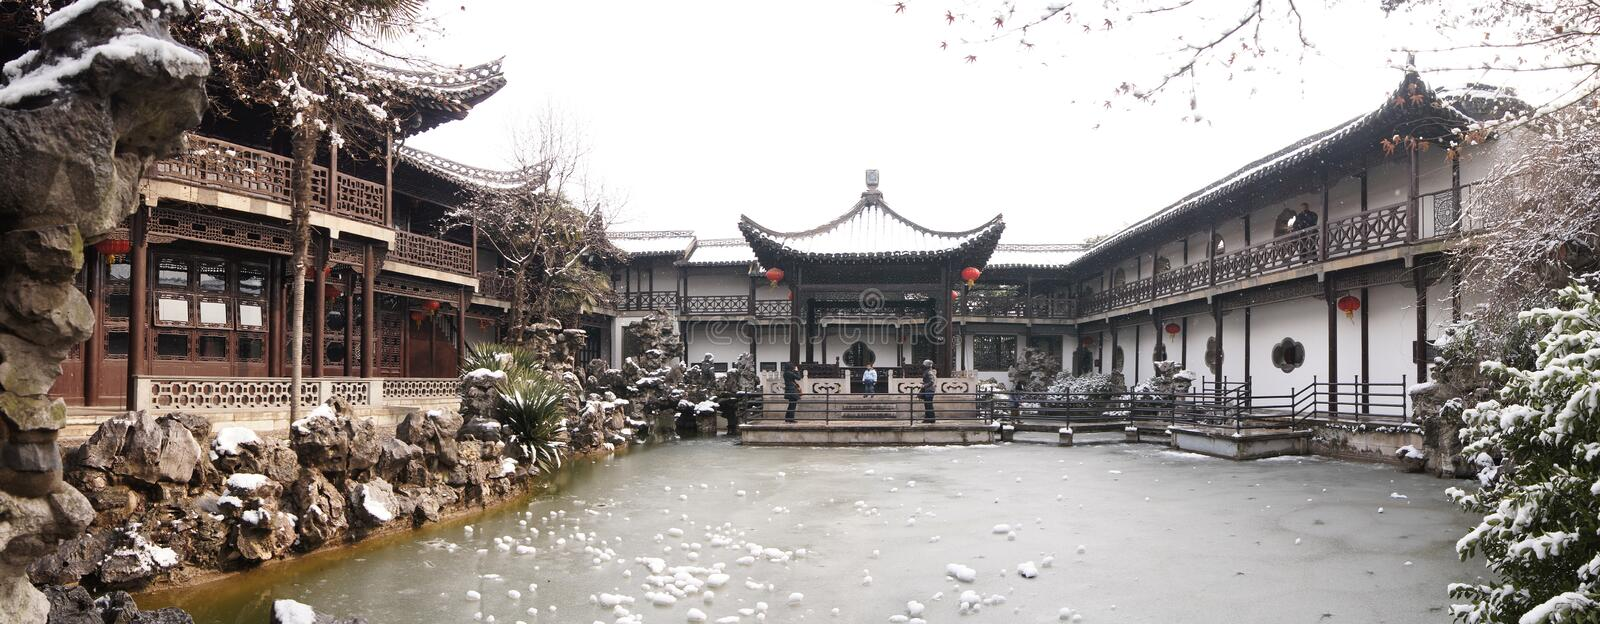 He Garden. National key cultural unit He Garden from the old town of Yangzhou, Qing Dynasty, winter royalty free stock photo